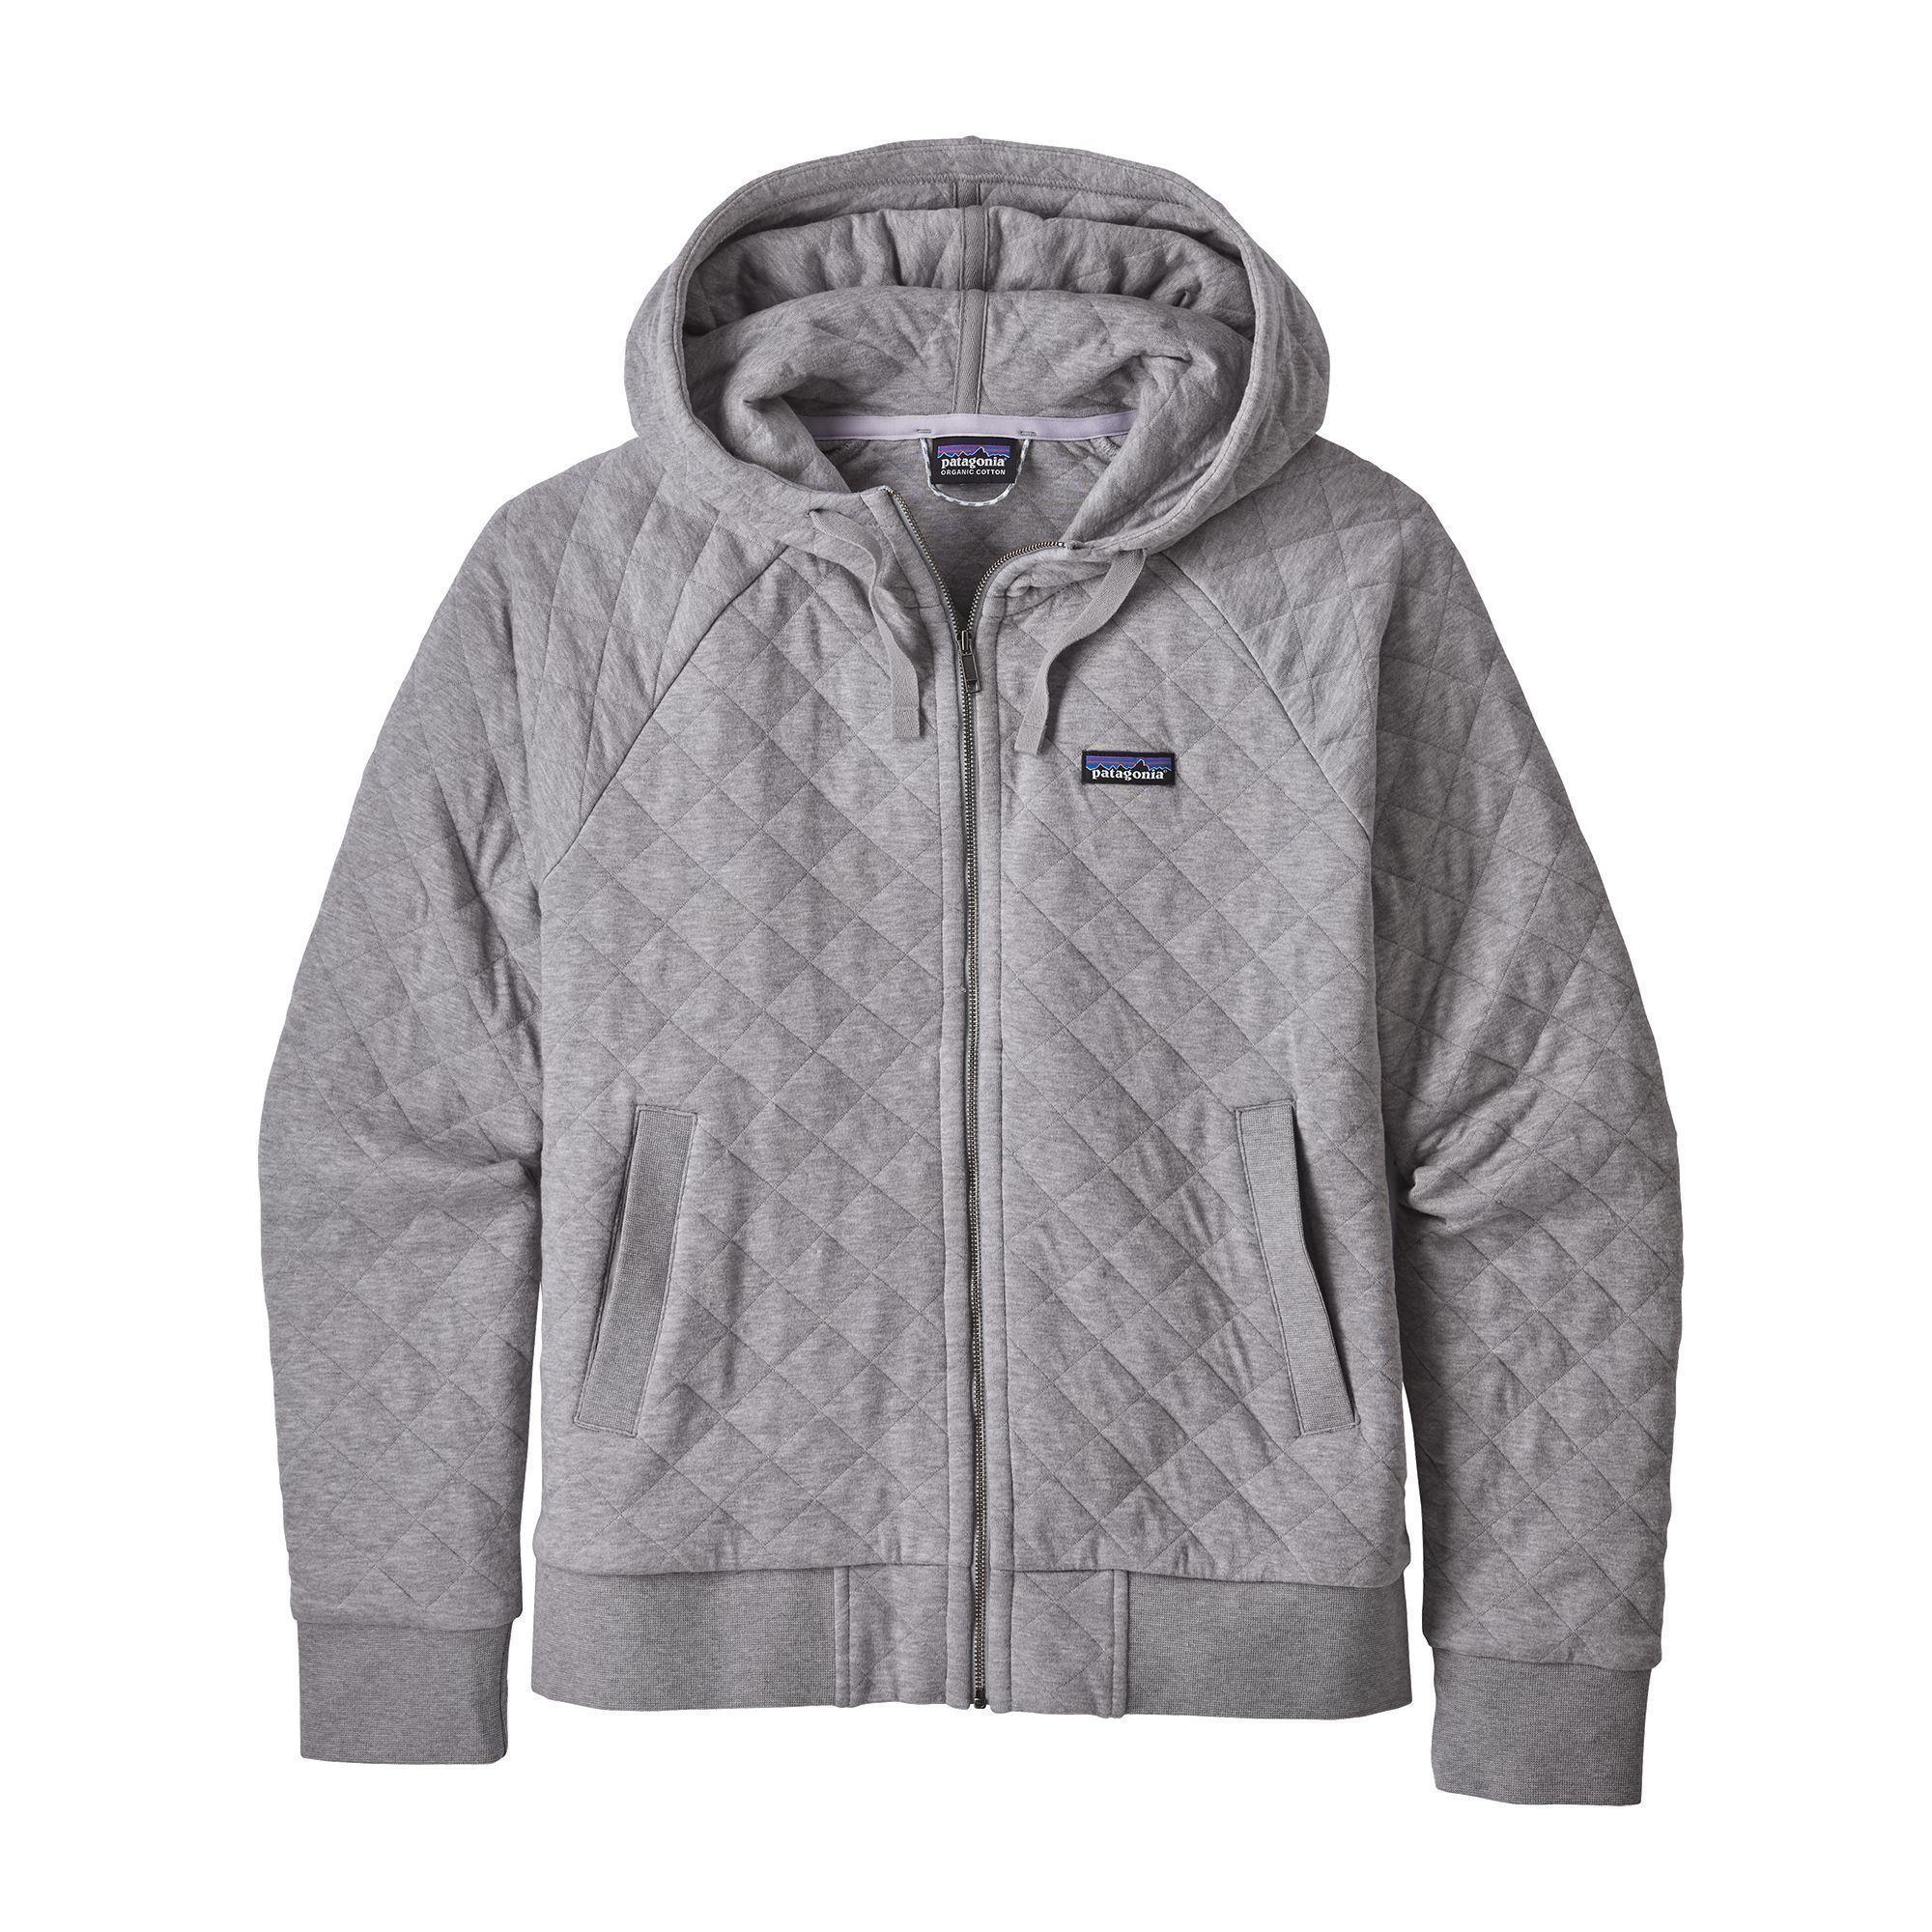 Patagonia - W's Organic Cotton Quilt Hoody - Drifter Grey - Organic cotton - Weekendbee - sustainable sportswear